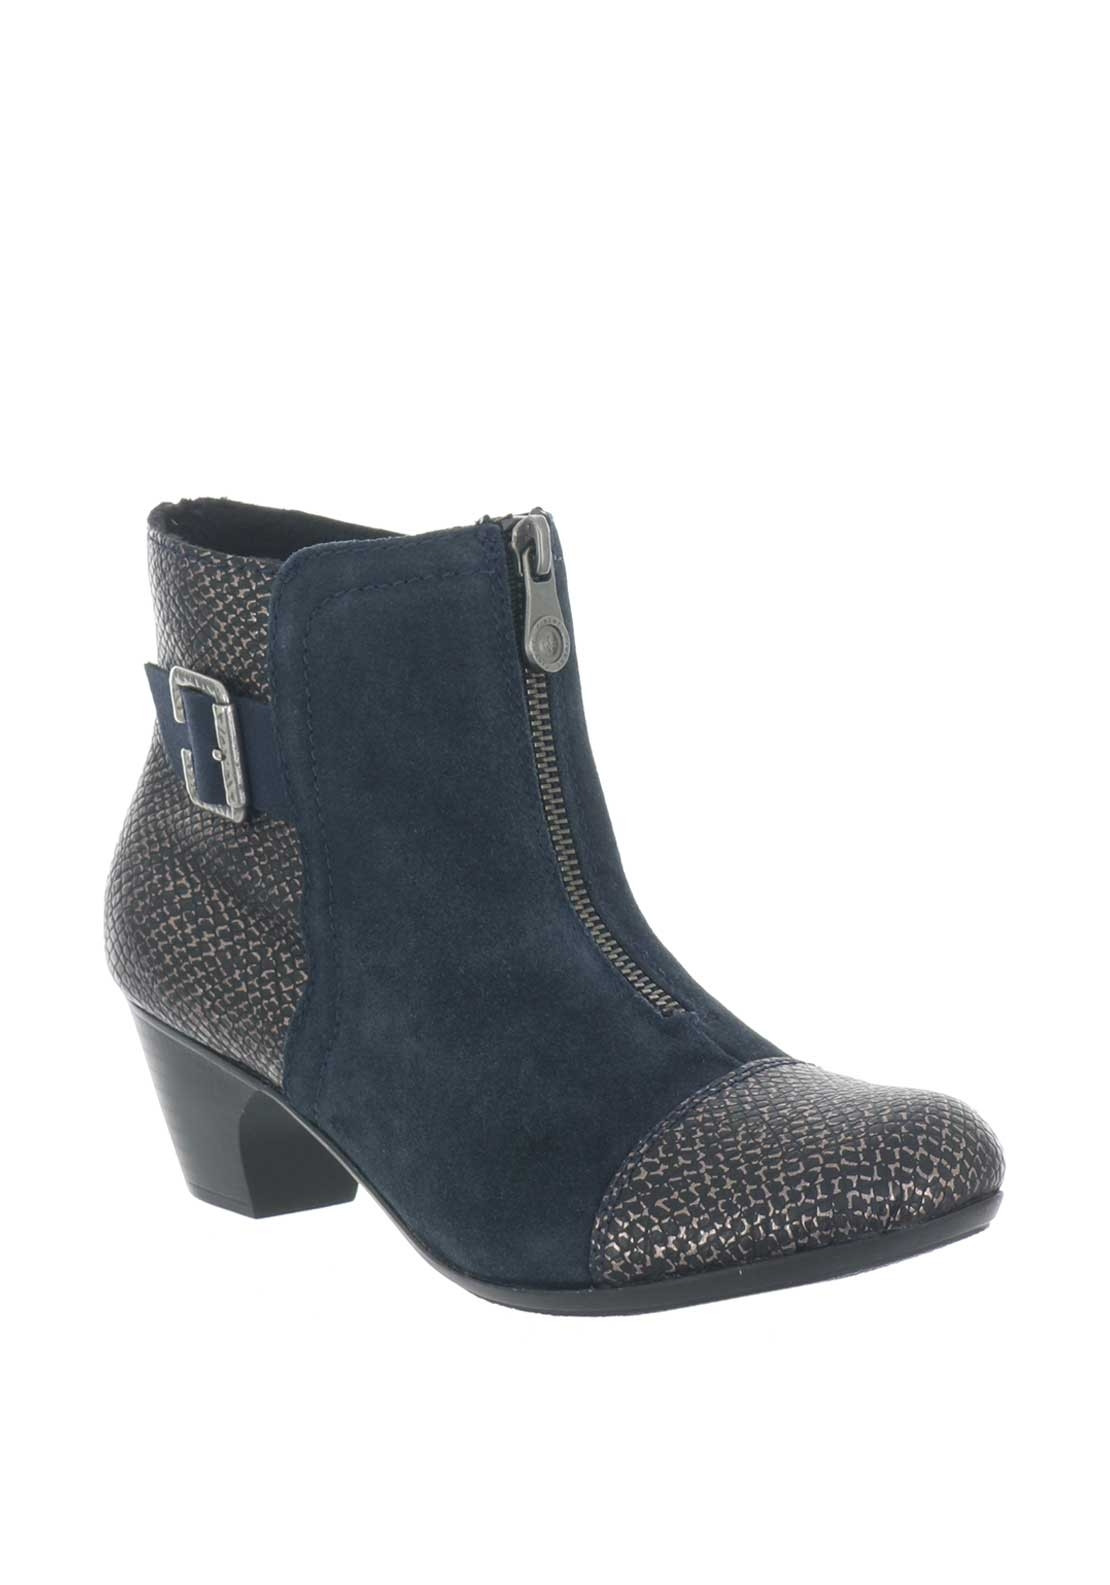 Rieker Womens Zip Heeled Ankle Boots, Navy